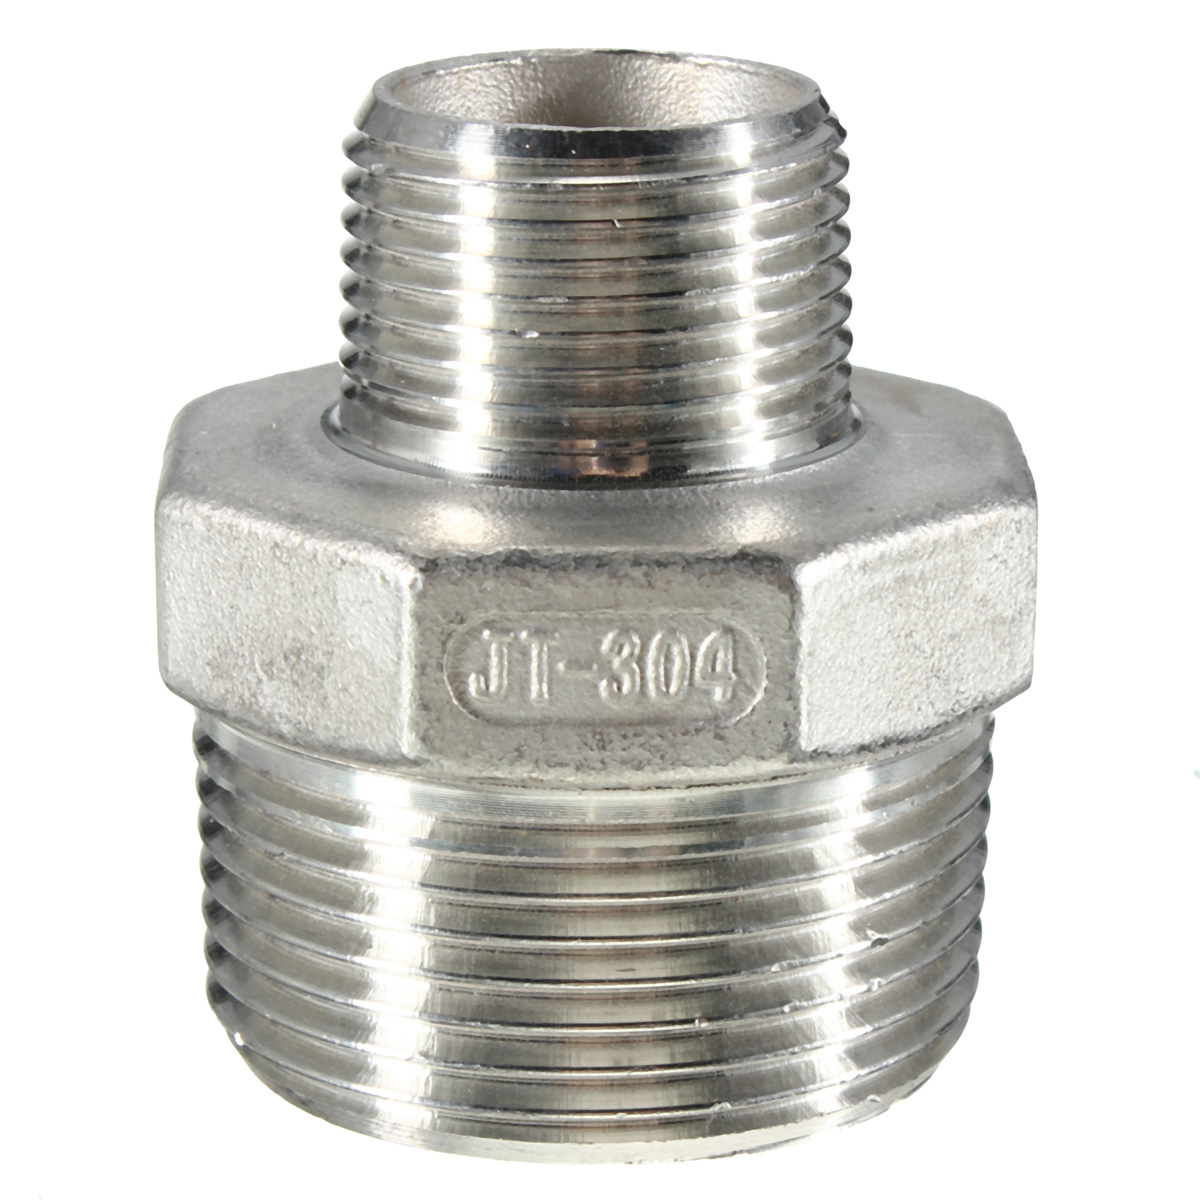 Npt male hex nipple threaded reducer pipe